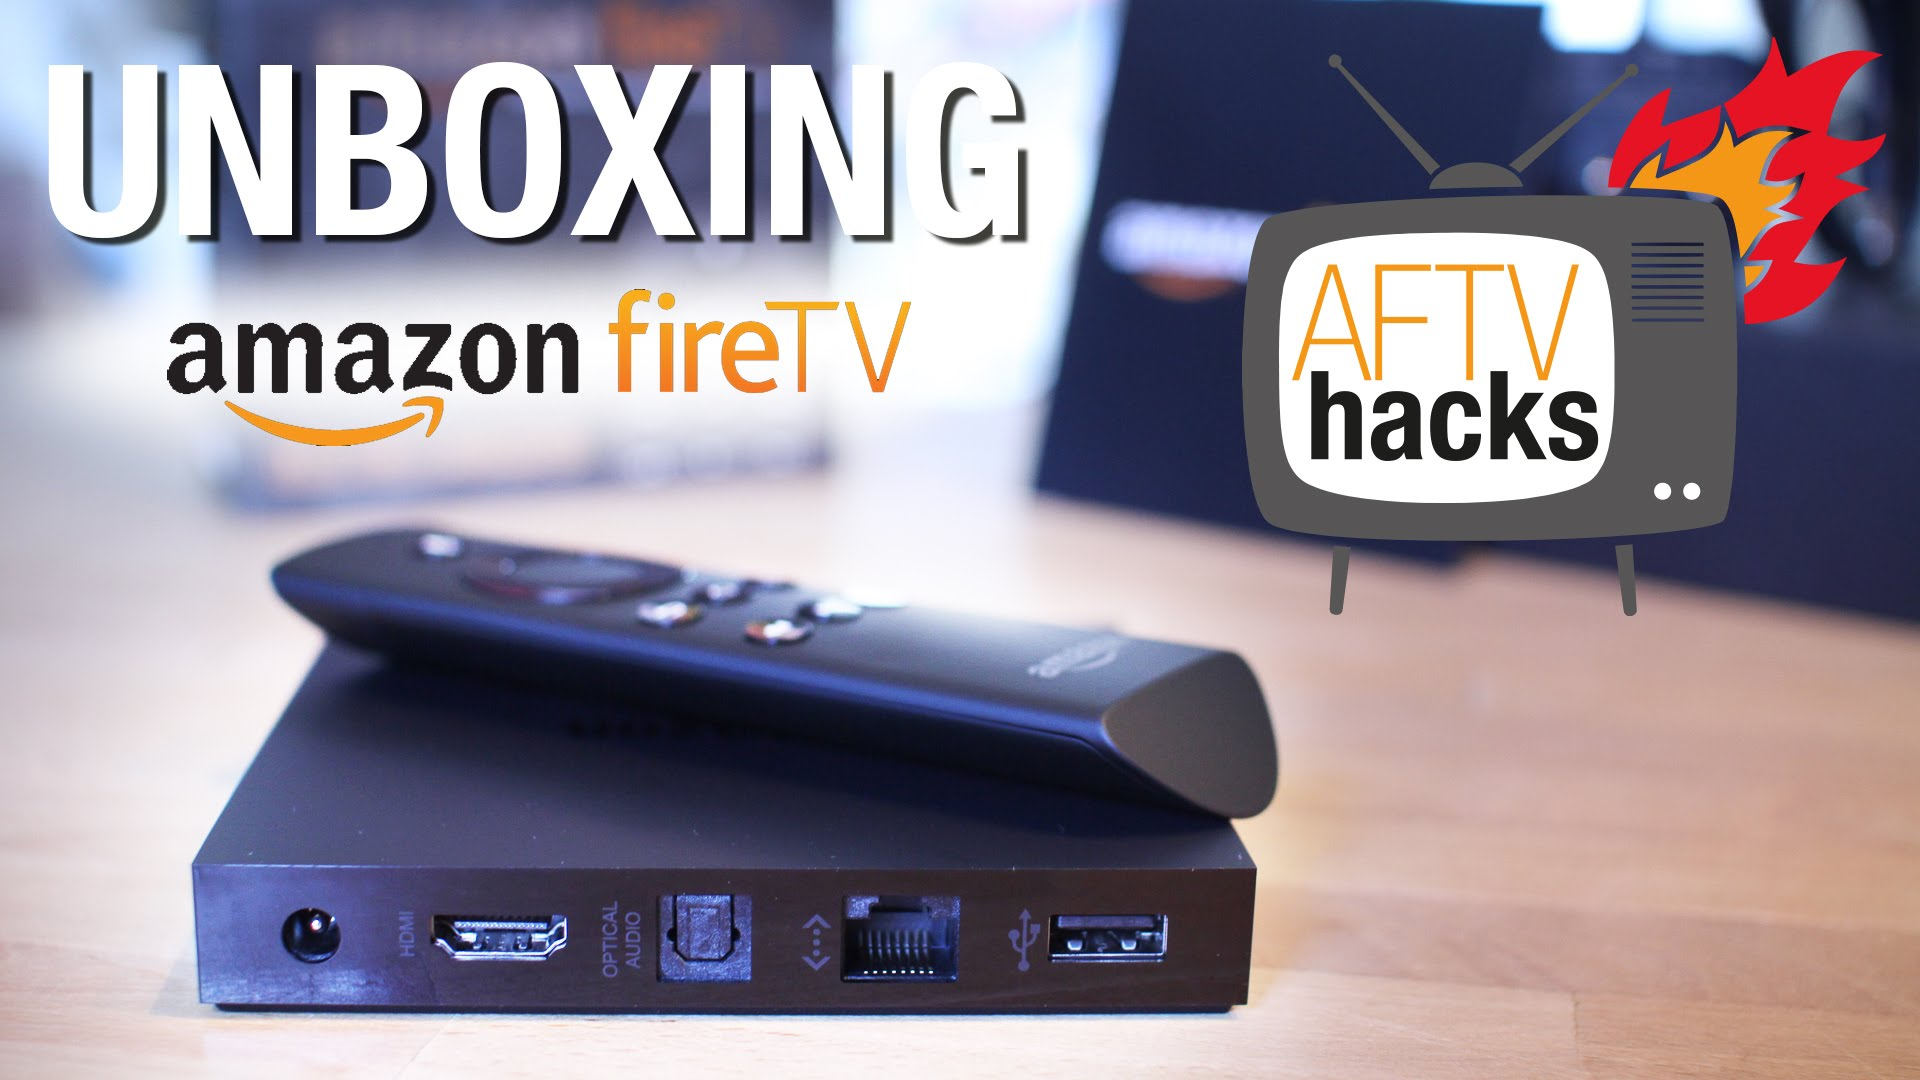 Unboxing-Video des deutschen Amazon Fire TV